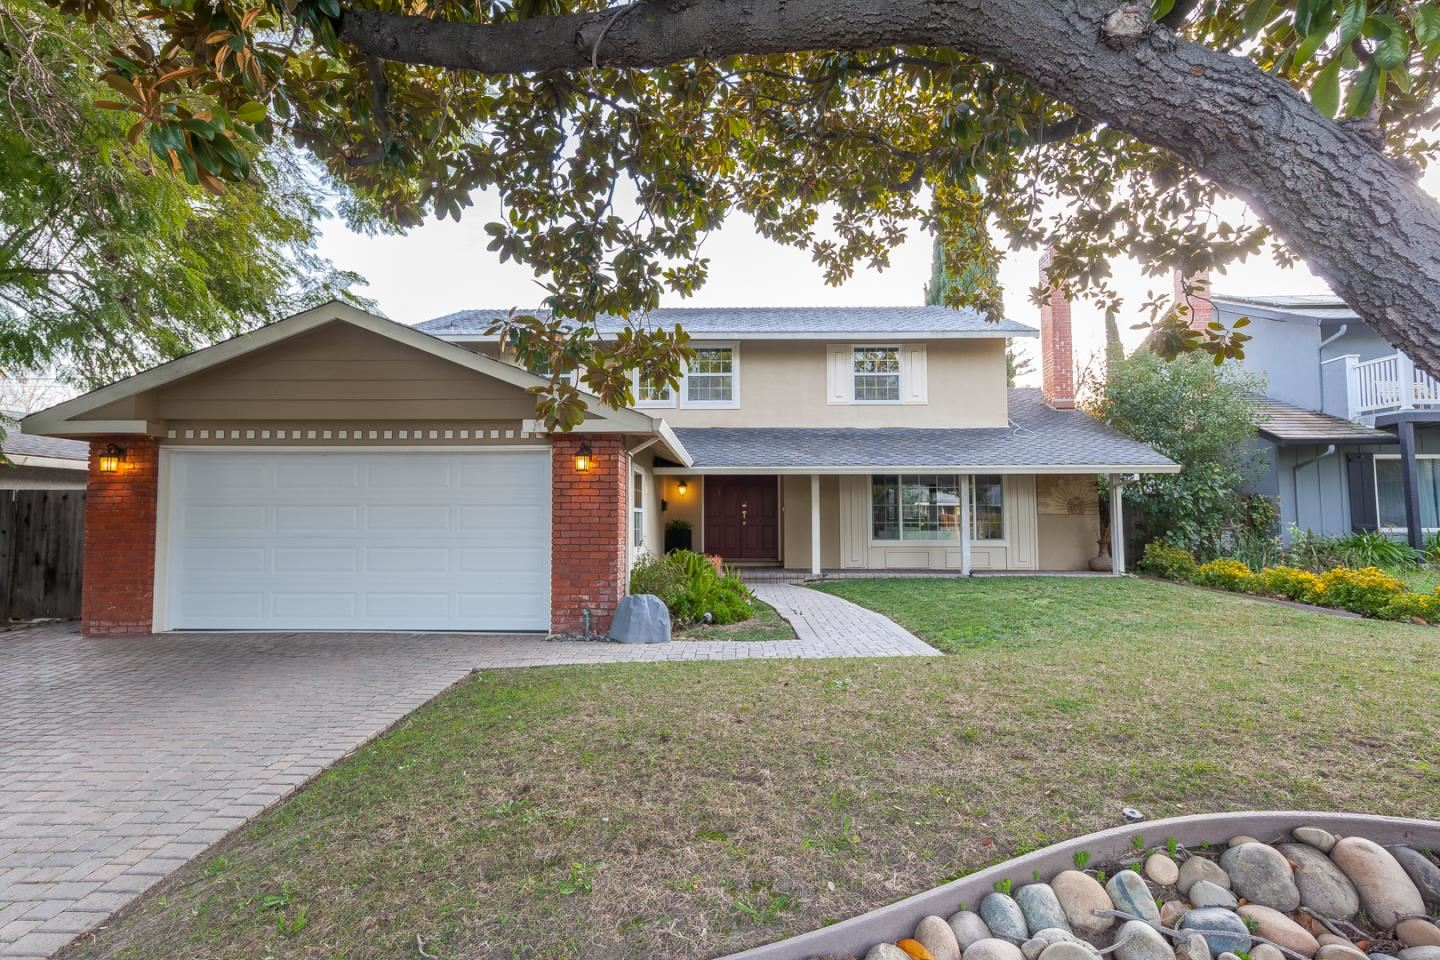 Photo for 1026 Hollenbeck AVE, SUNNYVALE, CA 94087 (MLS # ML81779150)